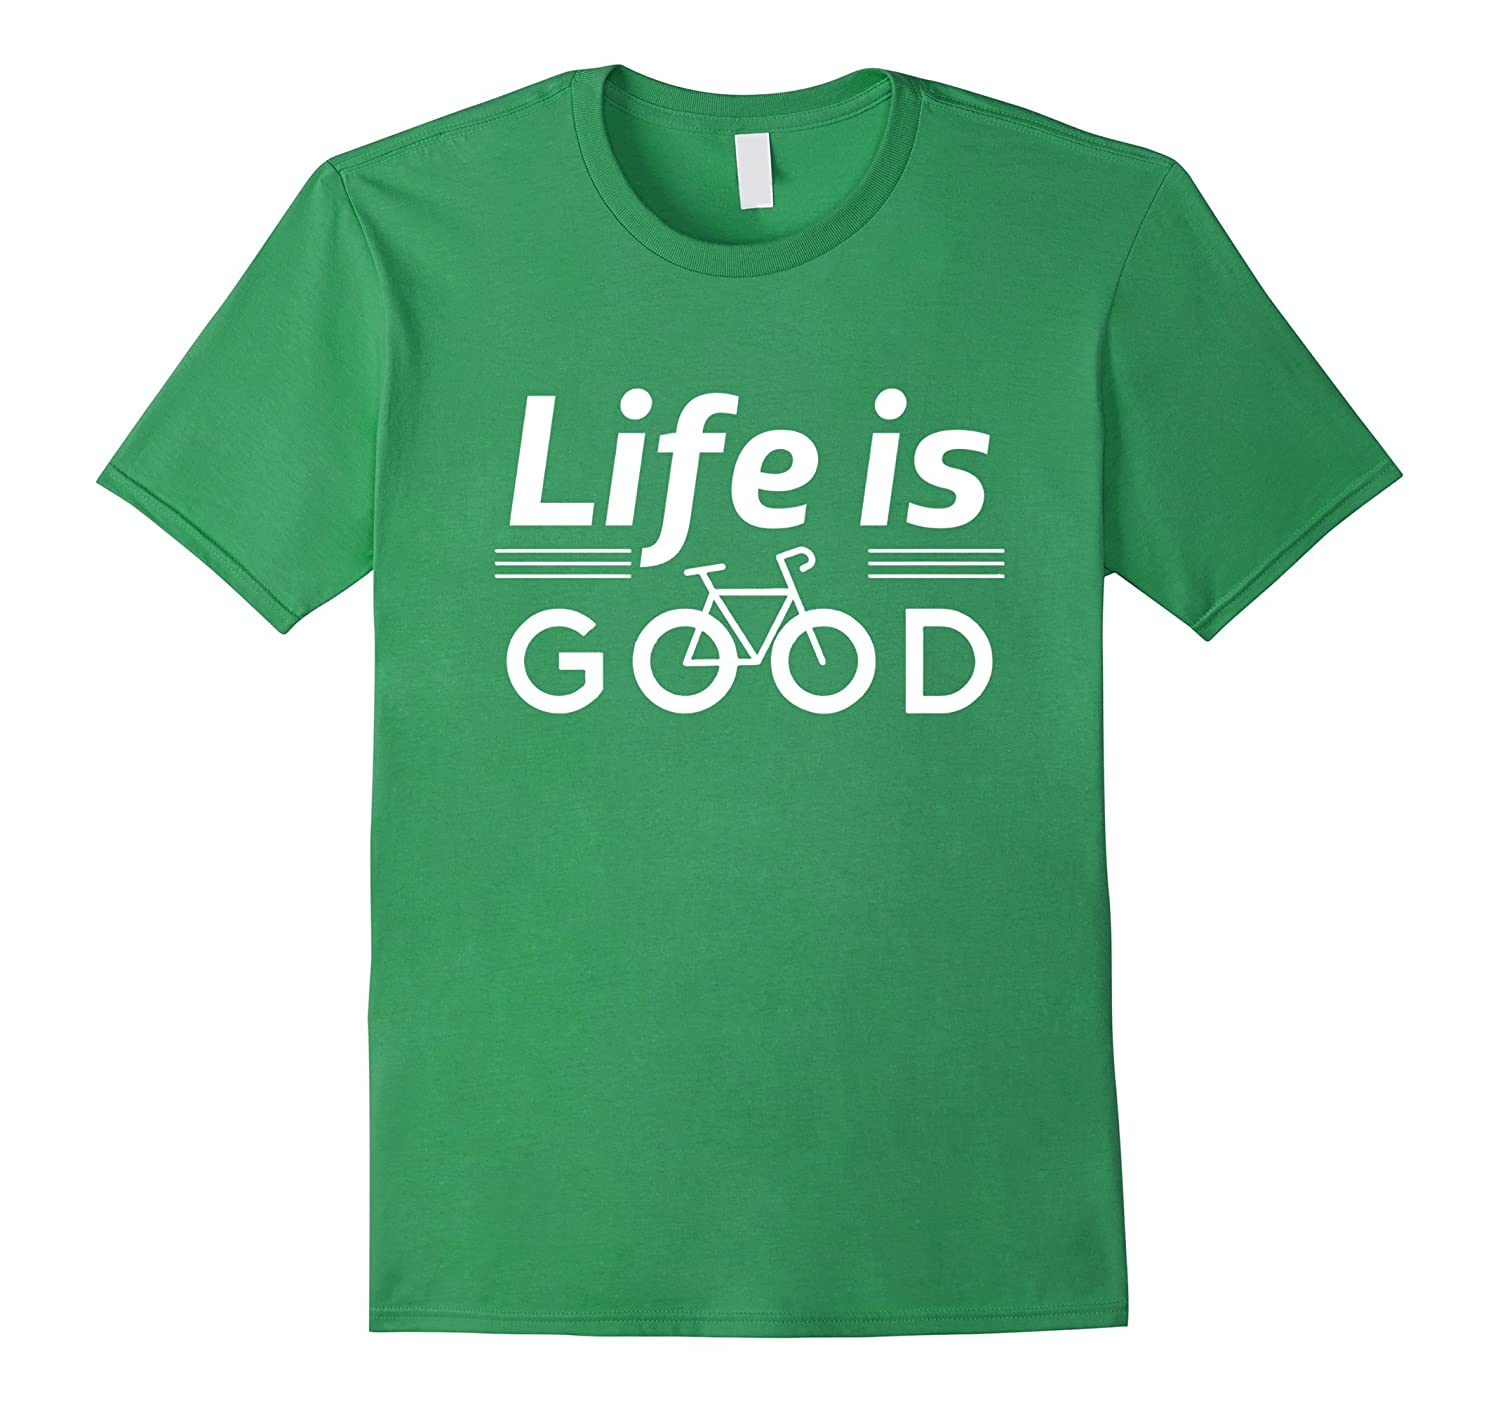 ee61a622c68 Life is Good With Bicycle T-Shirt Bike Shirt-PL – Polozatee